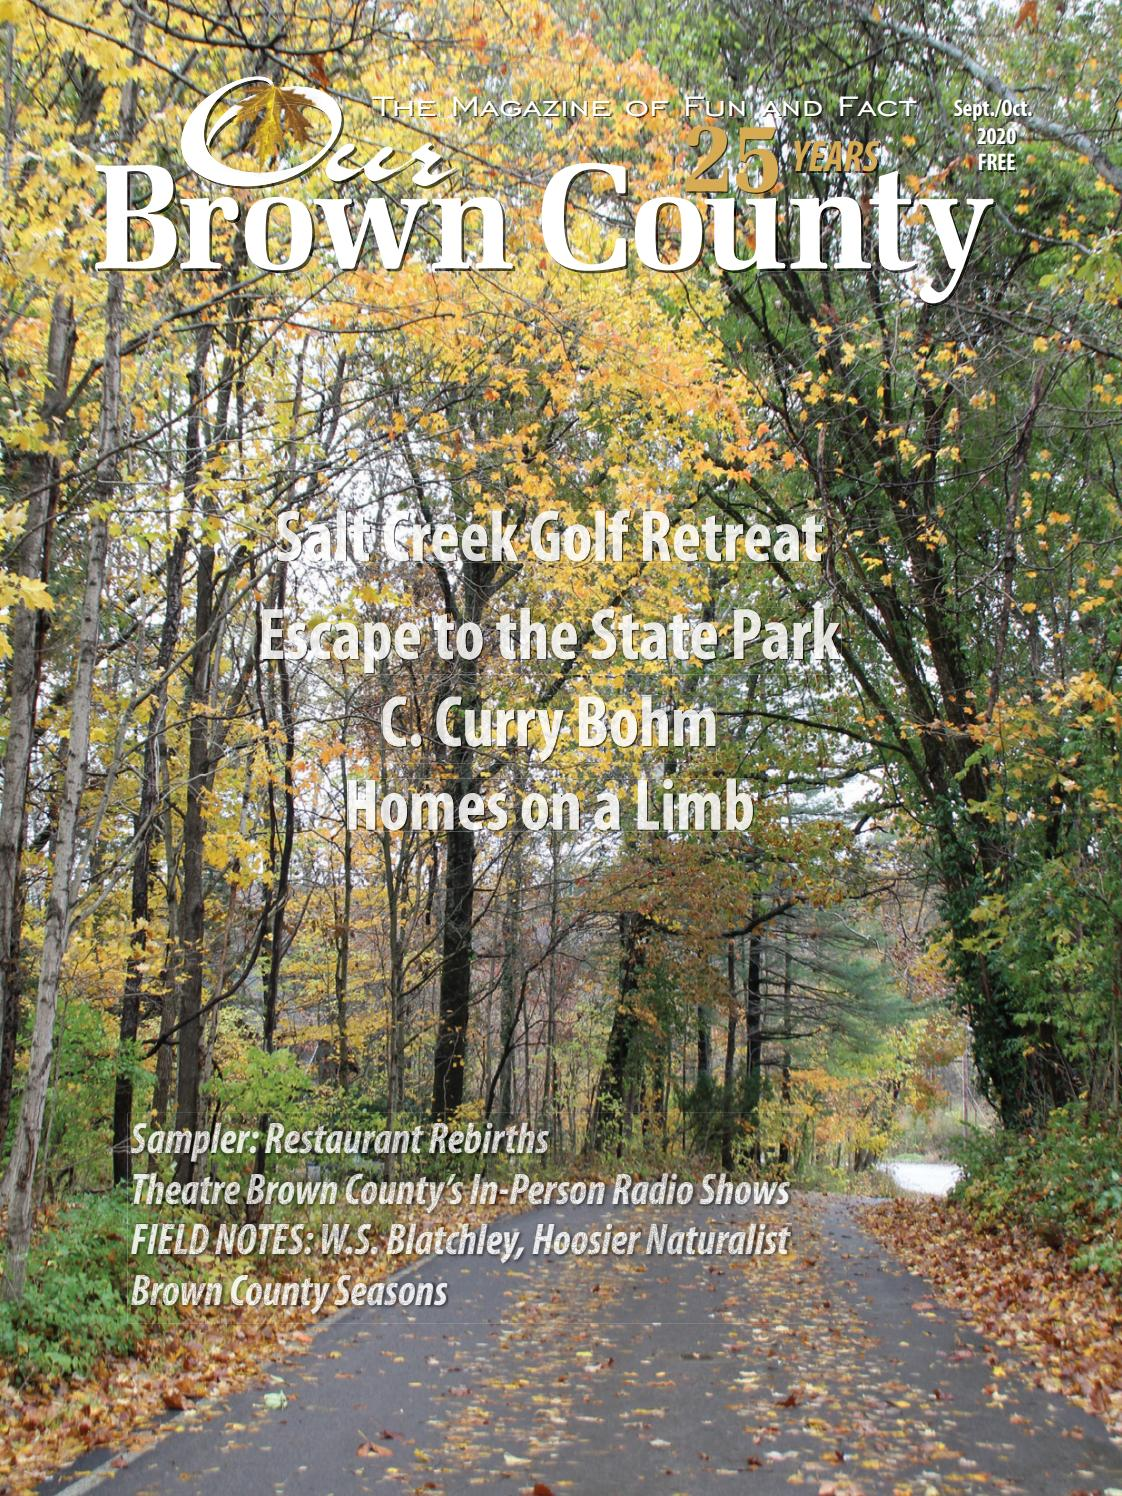 Edinburgh Pioneer Village Halloween 2020 Sept./Oct. 2020 OUR BROWN COUNTY by Our Brown County   issuu